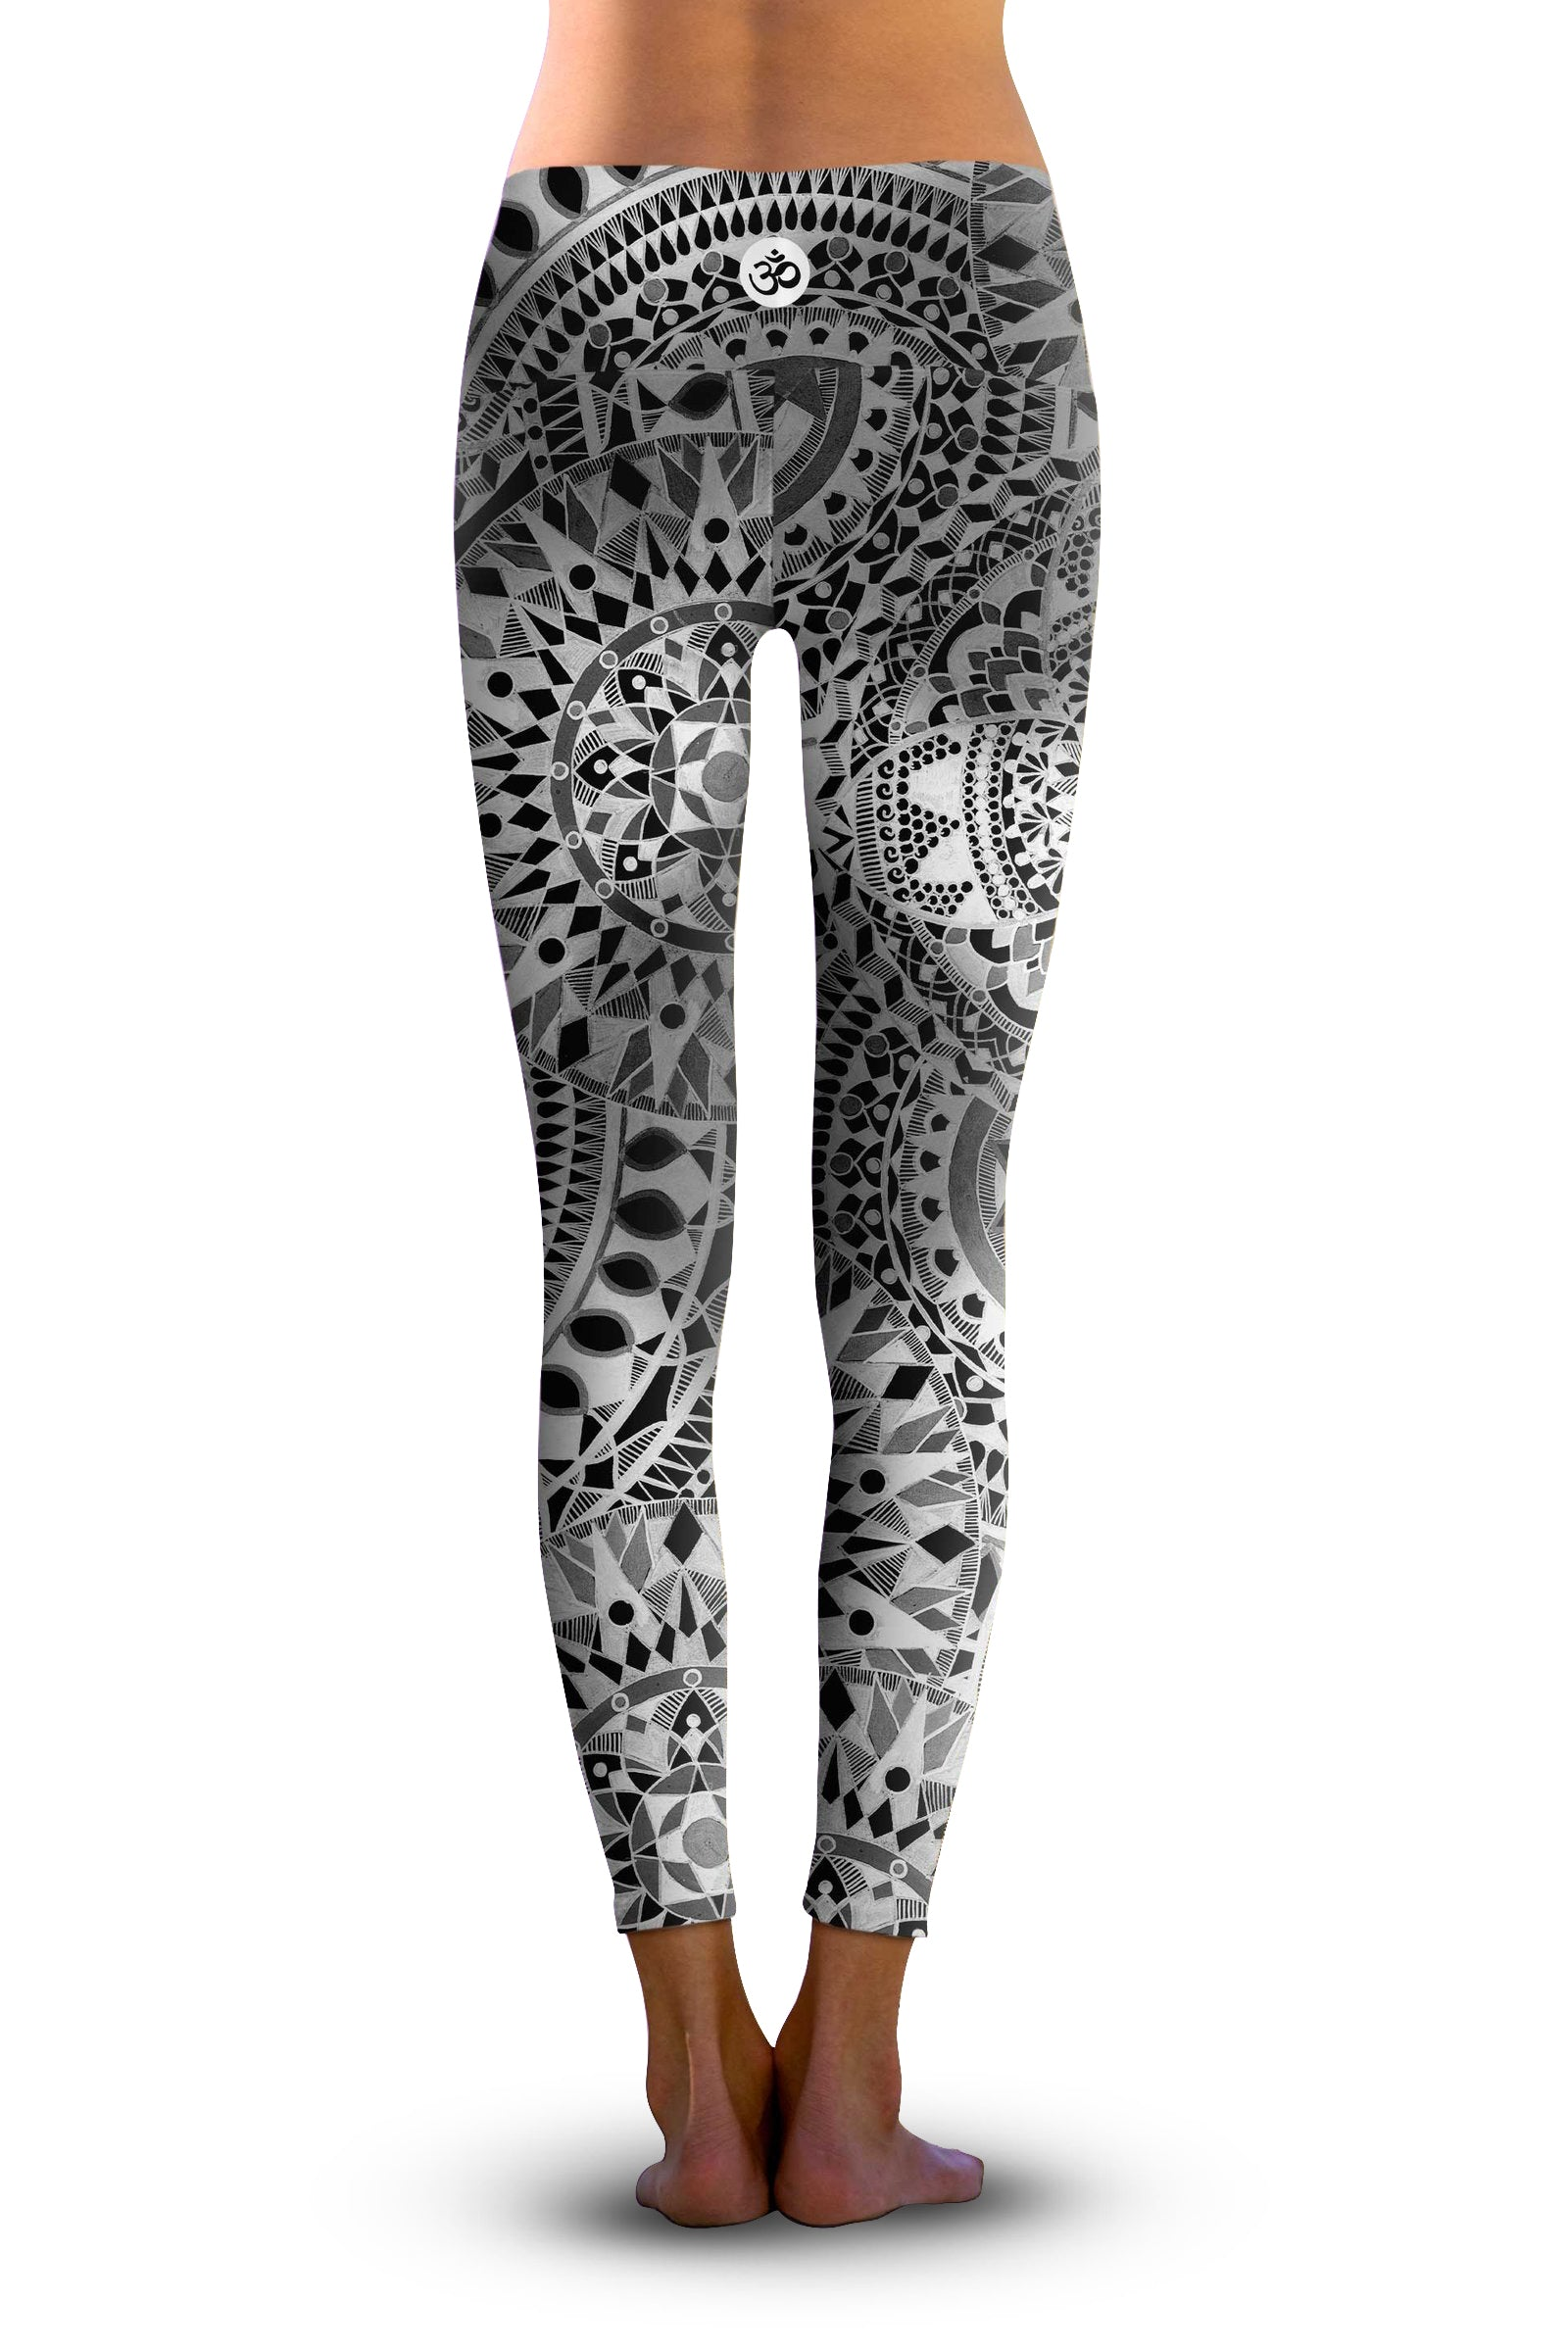 #Black Chakra, Eco-Friendly Active Performance Leggings